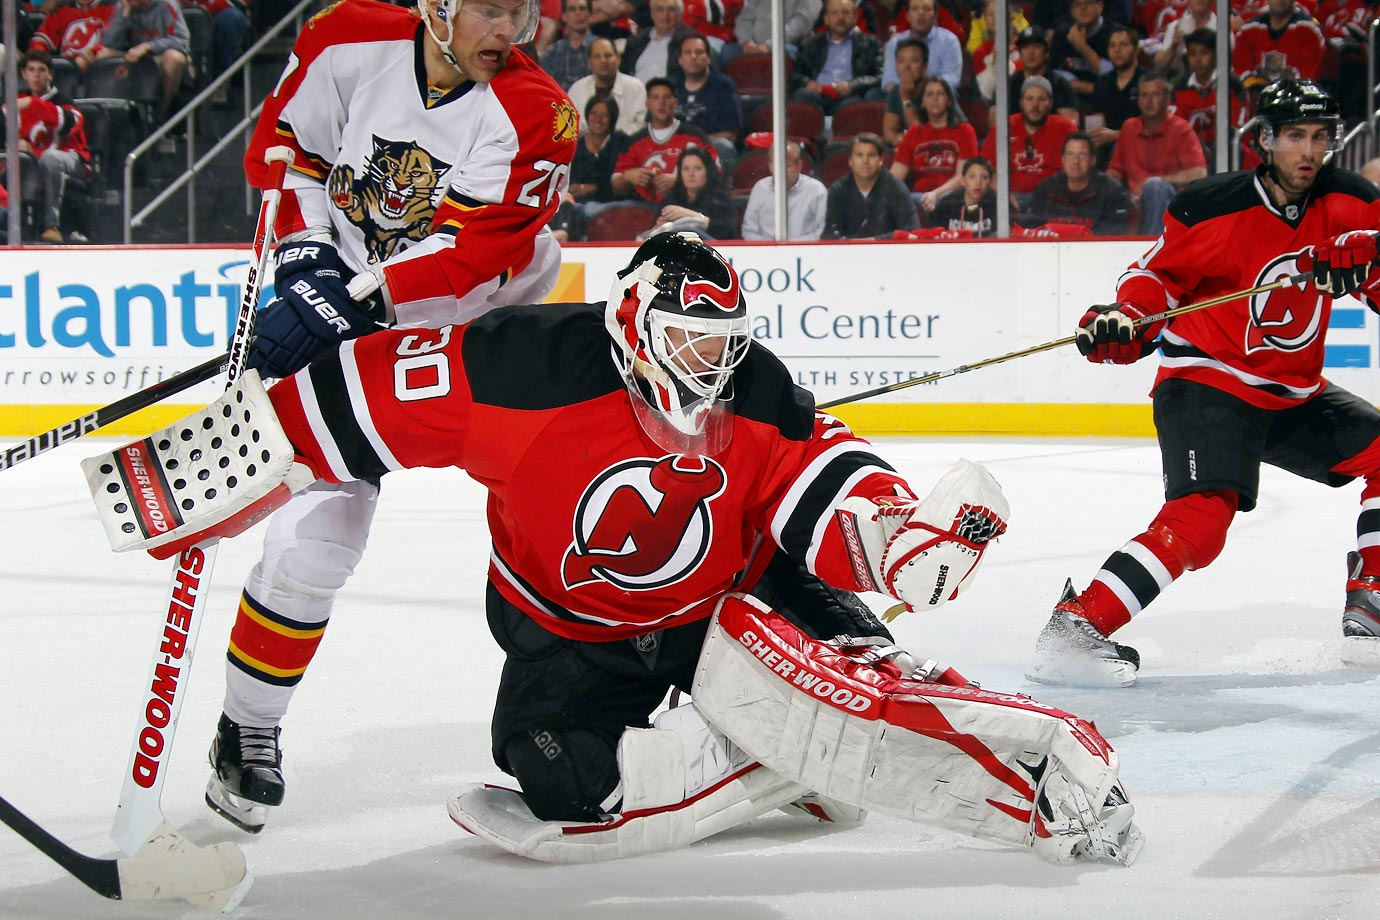 Coming off his 14th and final 30-win regular season, Brodeur blanked the Florida Panthers, 4-0, in Game 4 the 2012 Eastern Conference quarterfinals on April 19 to break Patrick Roy's career postseason shutout mark (23) and become only the second goaltender to reach 100 playoff wins.